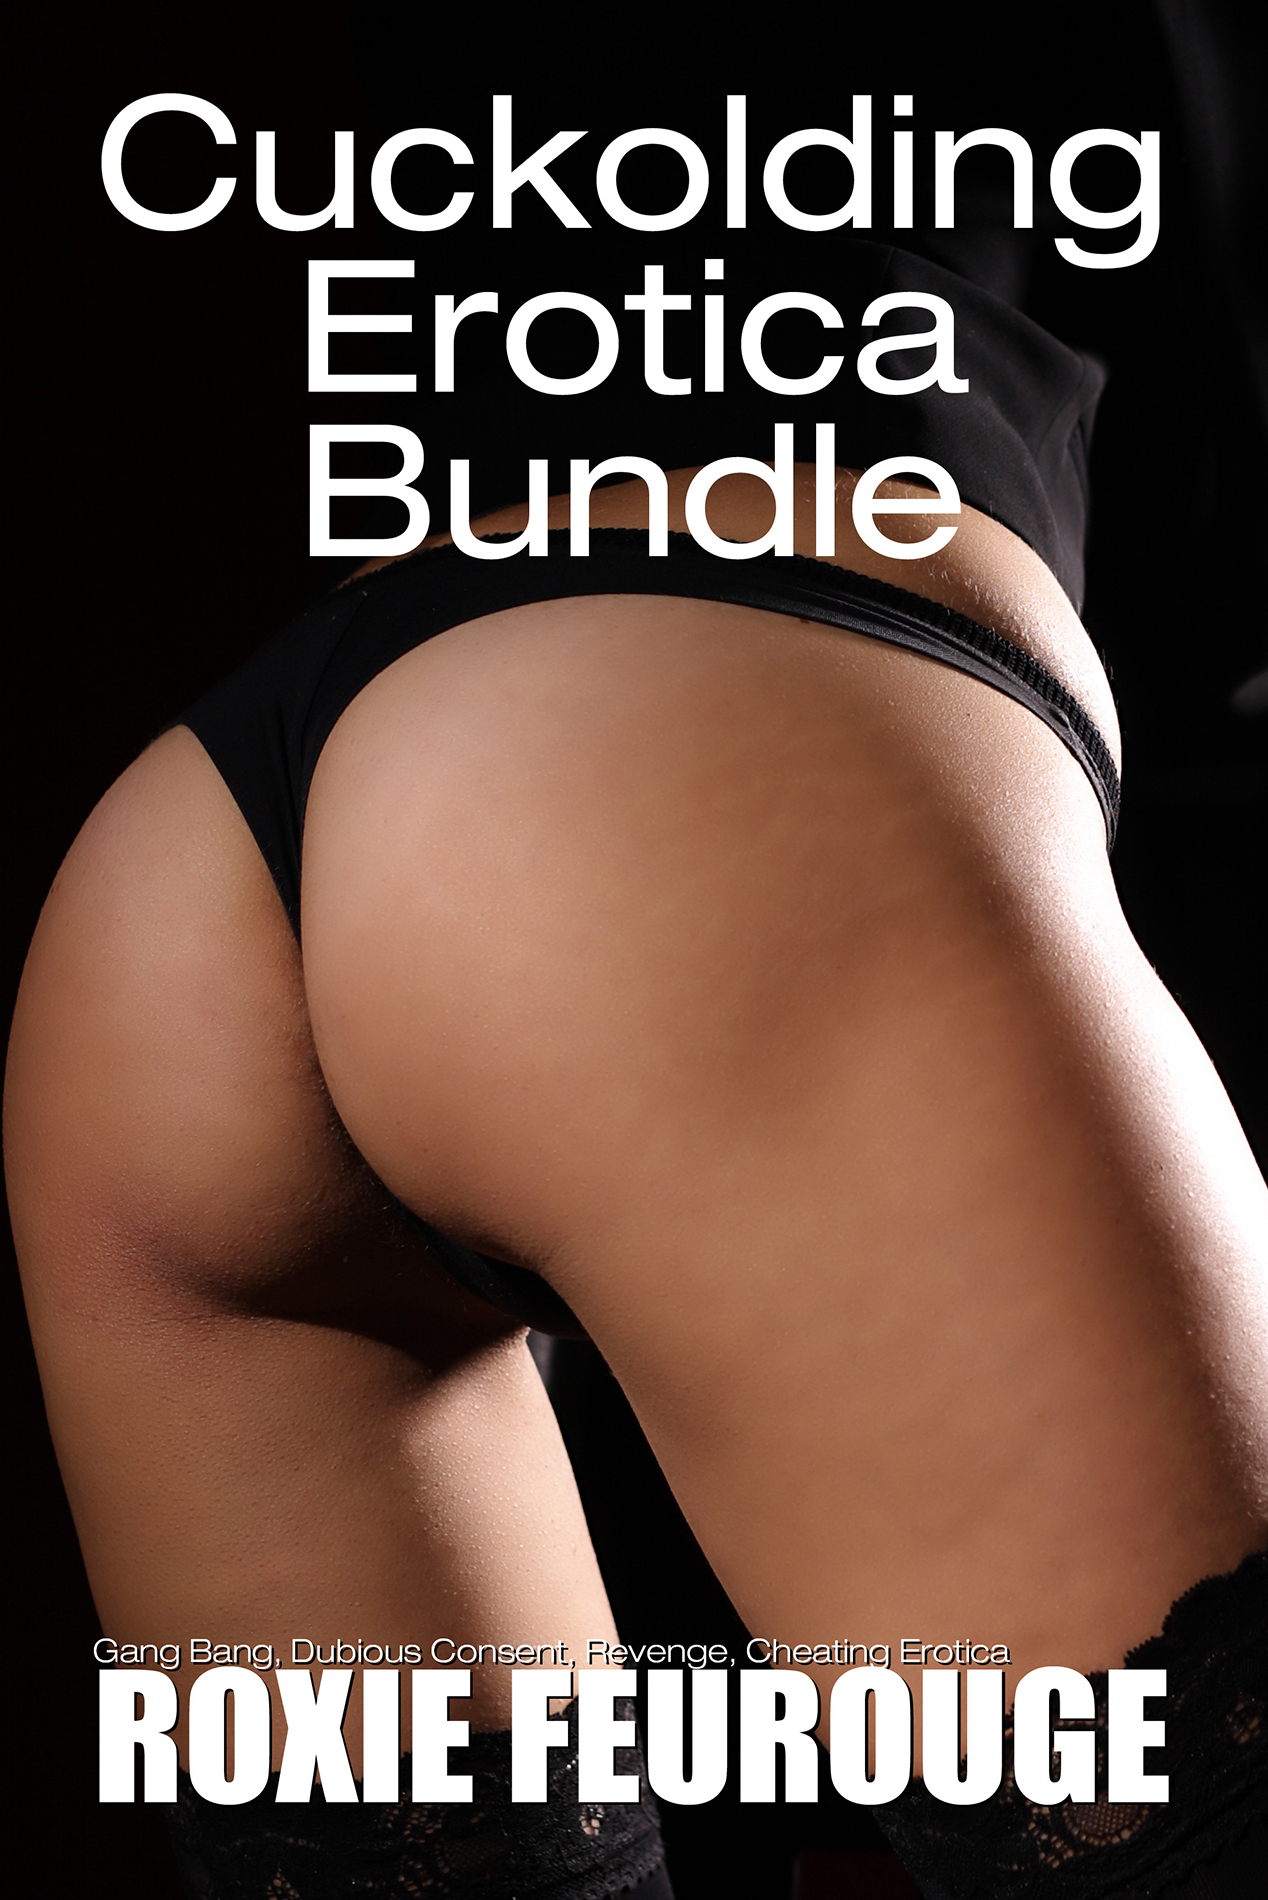 Cuckolding Erotica Bundle (Gang Bang, Dubious Consent, Revenge, Cheating Erotica)